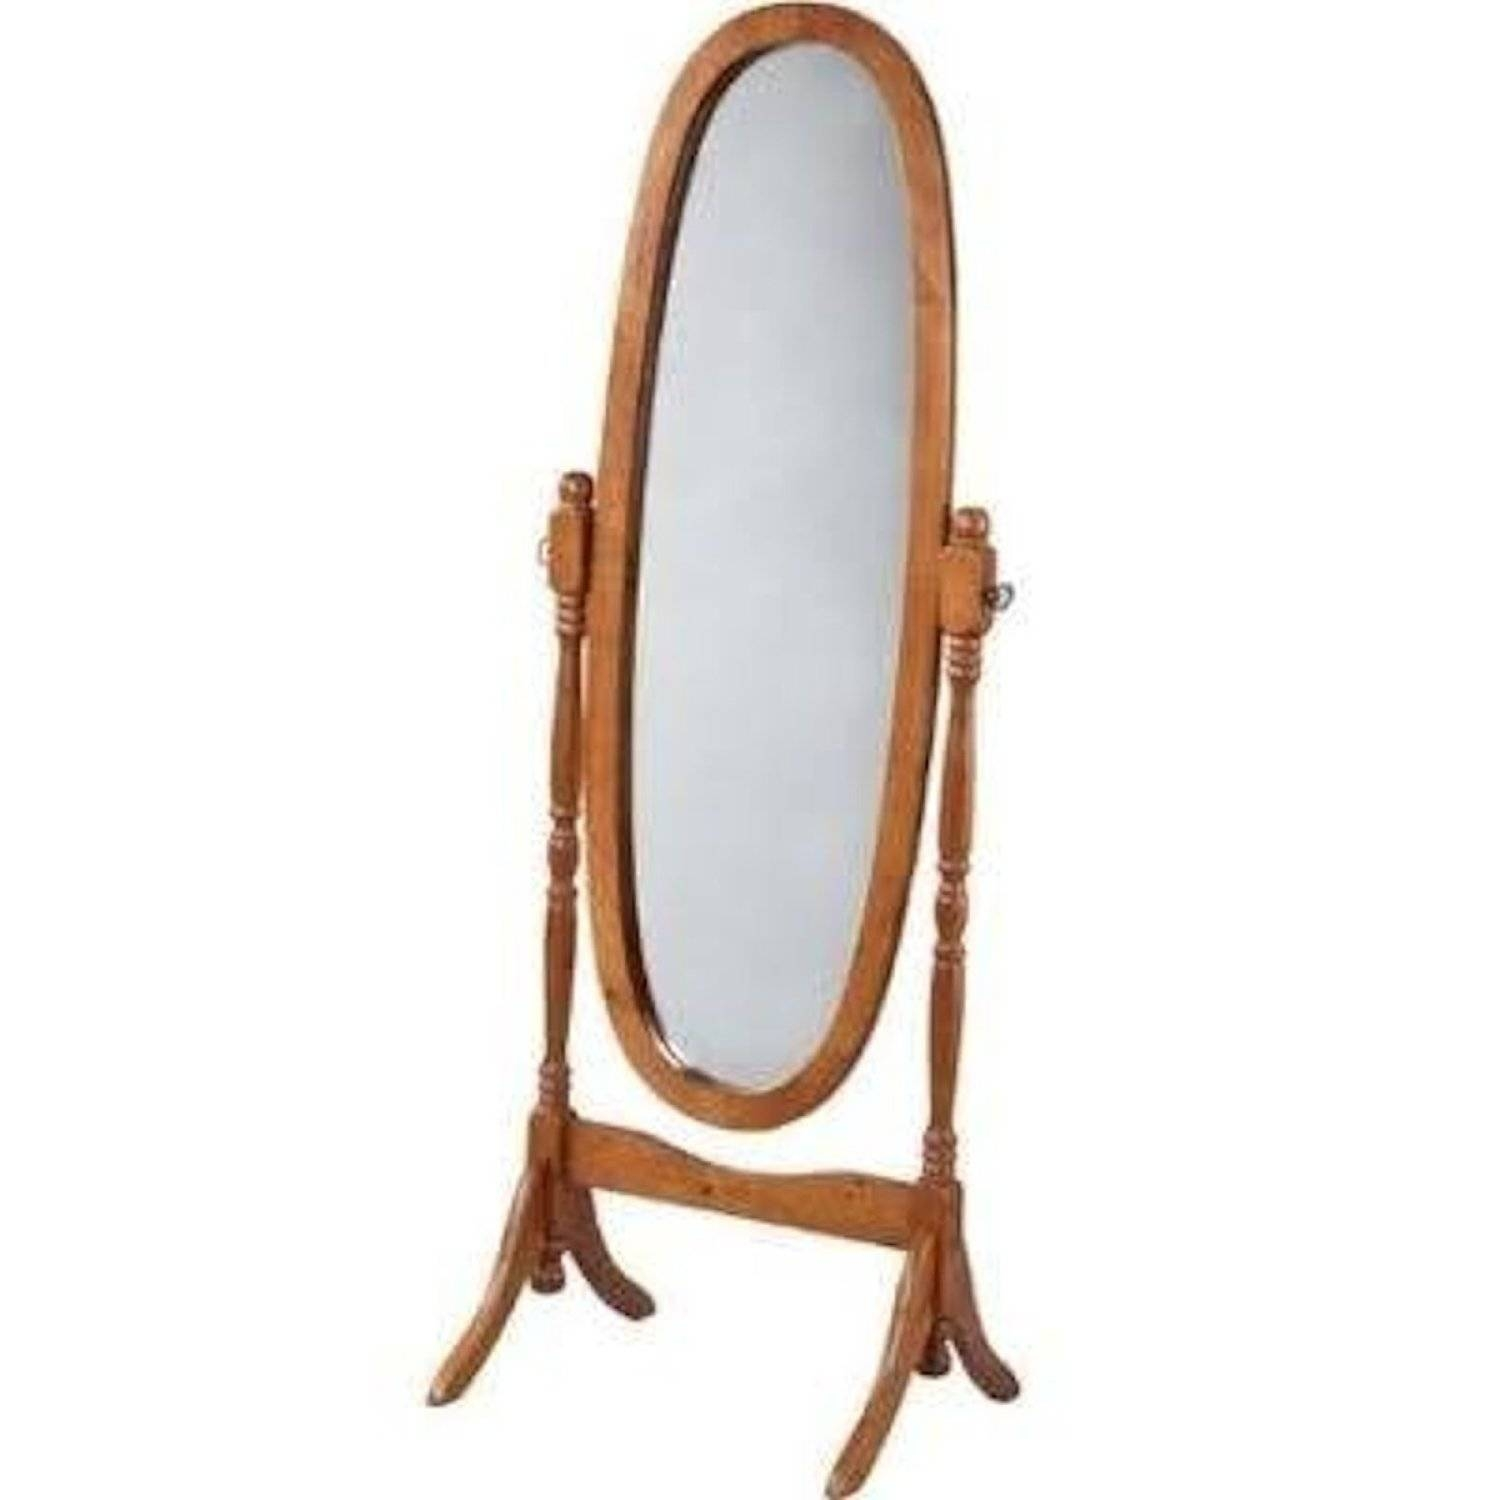 Homeware: Oval Full Length Standing Mirror | Large Floor Mirrors with regard to Long Oval Mirrors (Image 5 of 15)